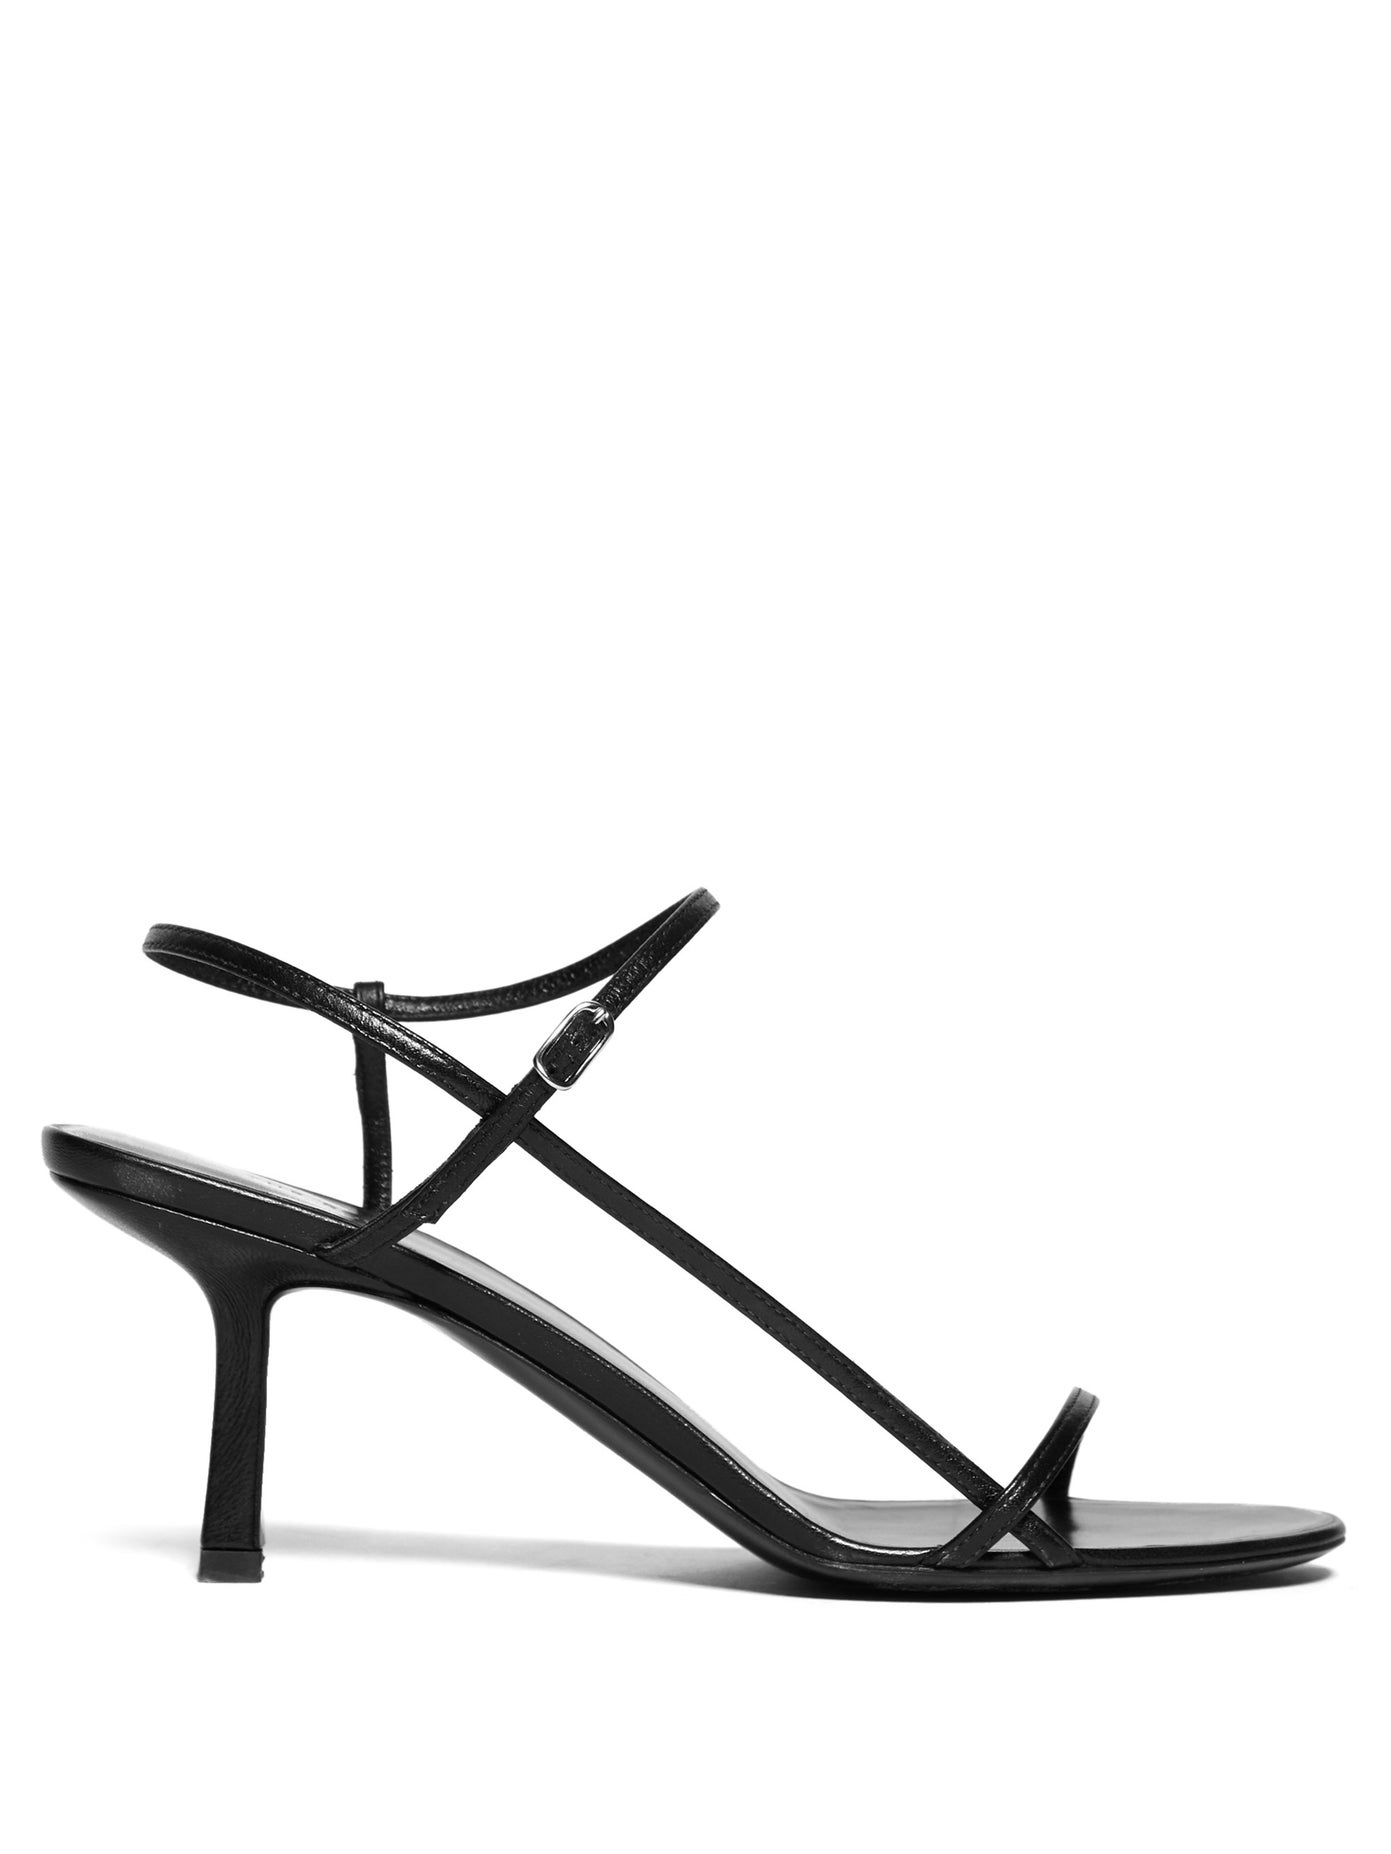 Bare mid-heel leather sandals by The Row, available on matchesfashion.com for $790 Kendall Jenner Shoes Exact Product